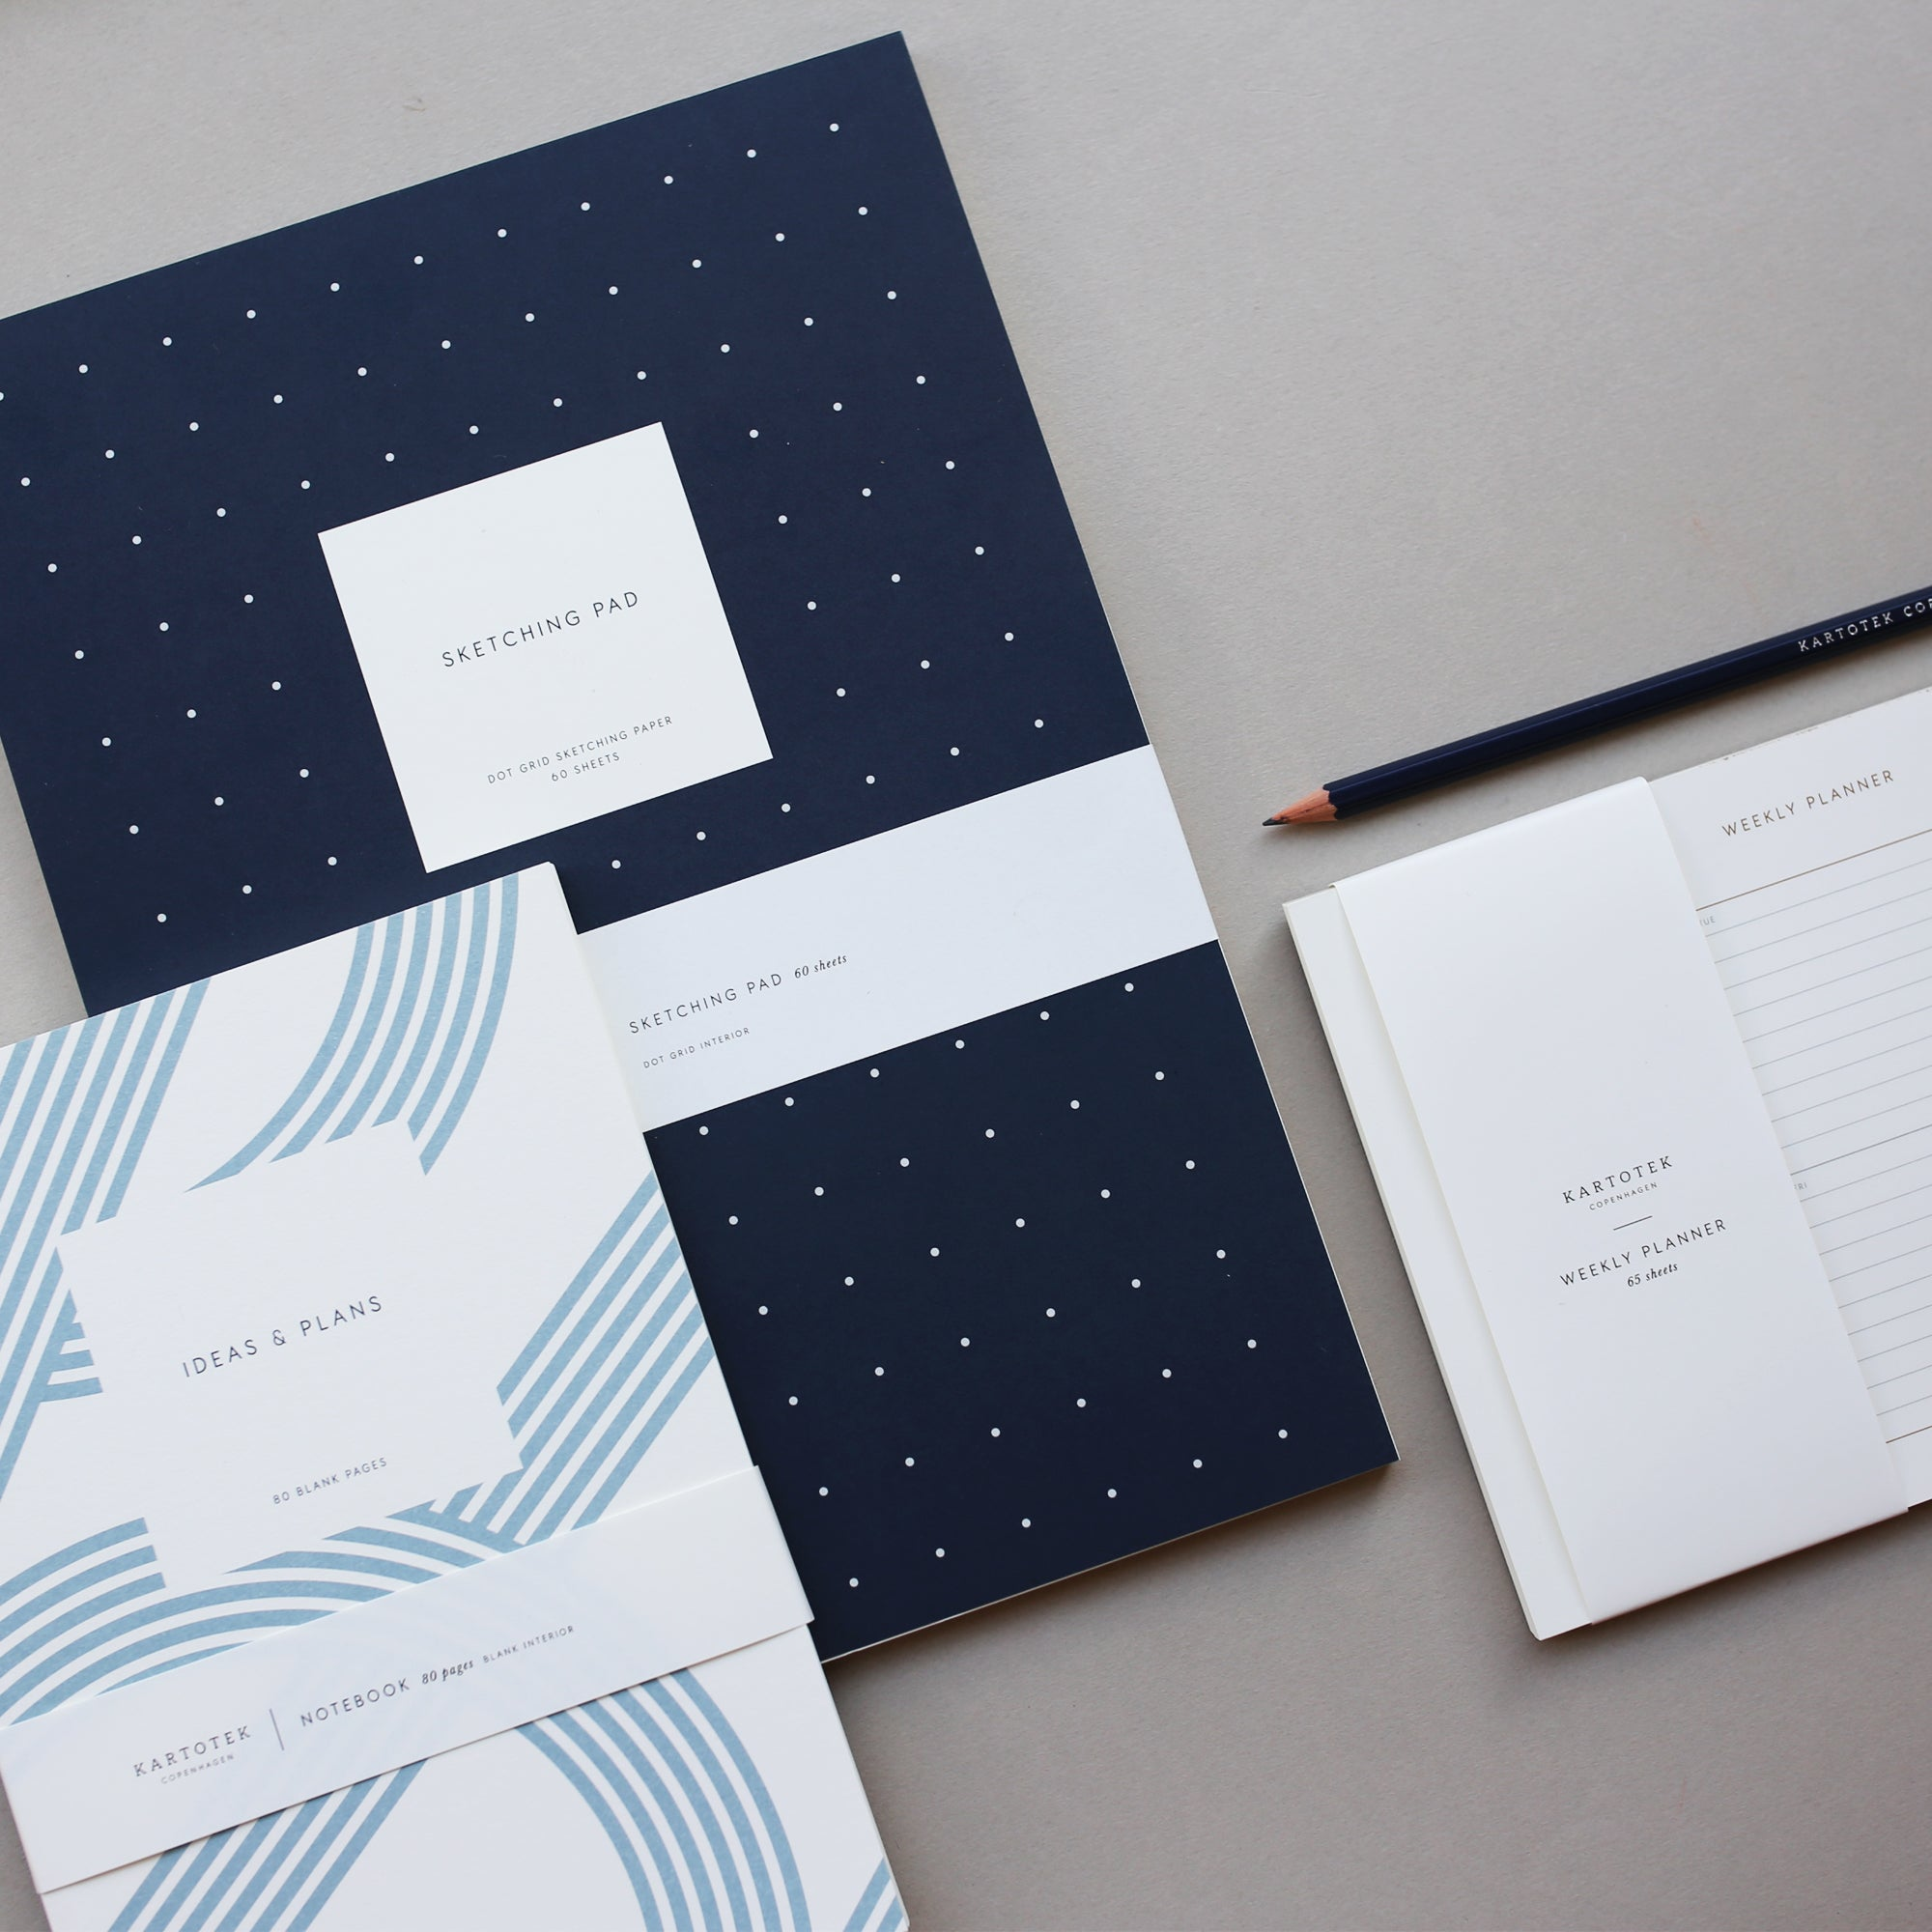 NOTEPAD WITH COVER / SKETCHING PAD / DOTS - NAVY